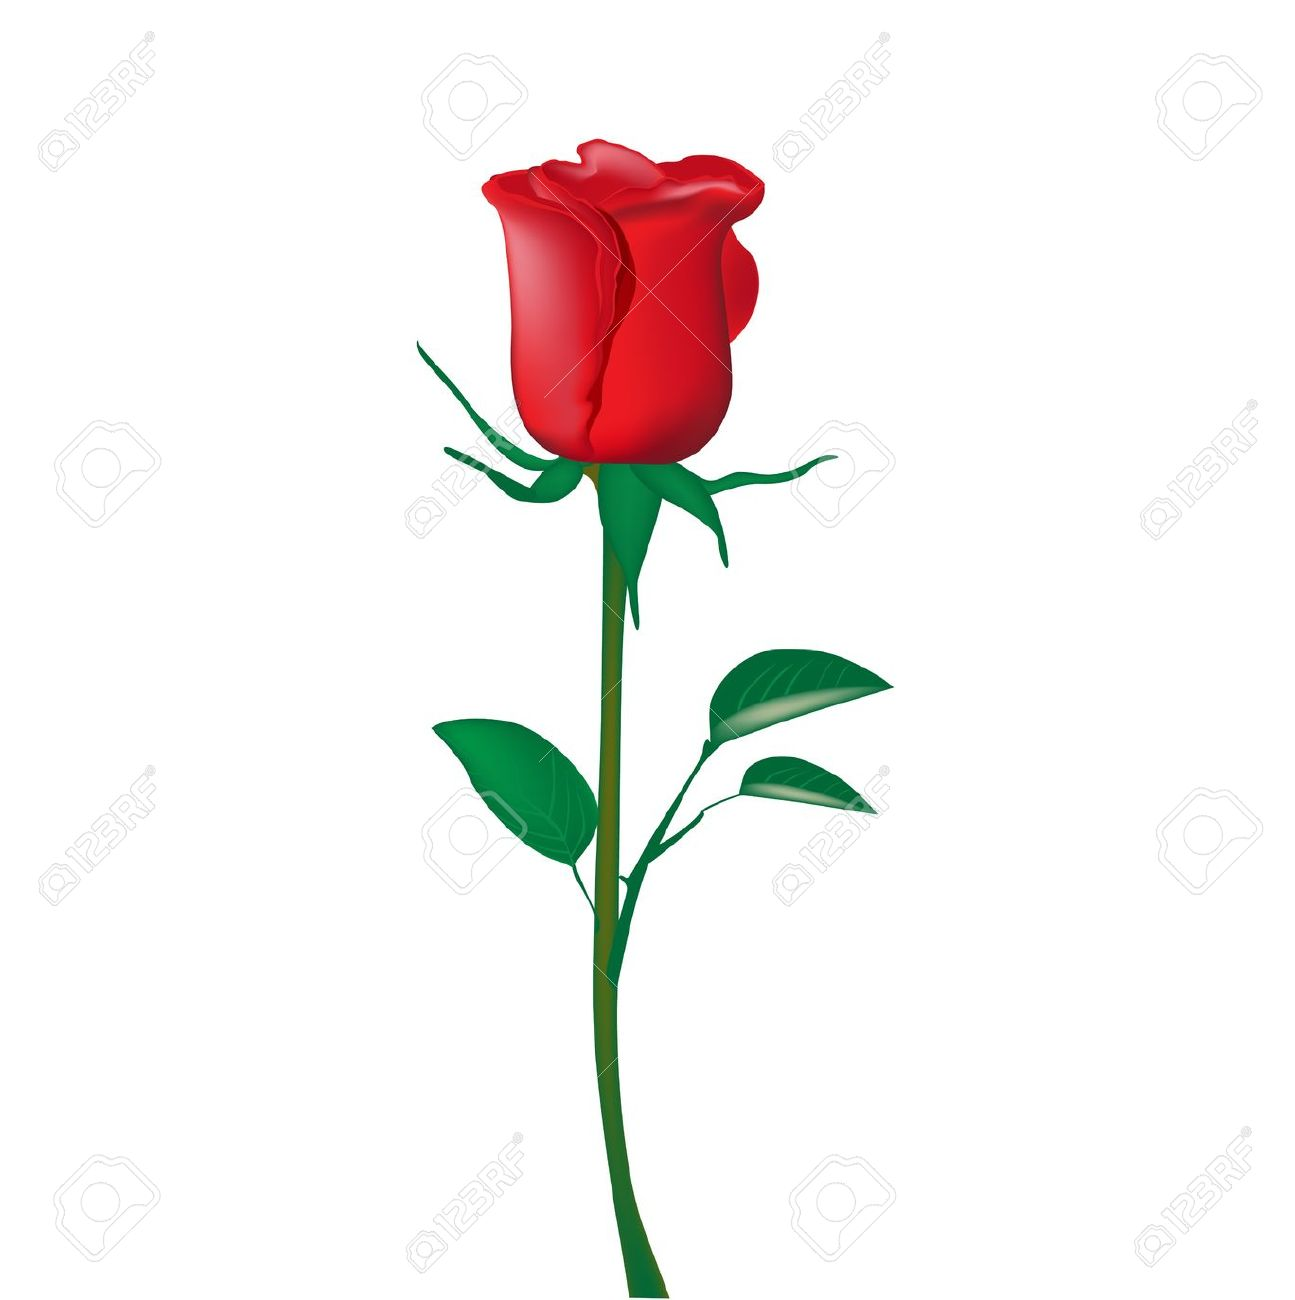 Beautiful red rose clipart download.